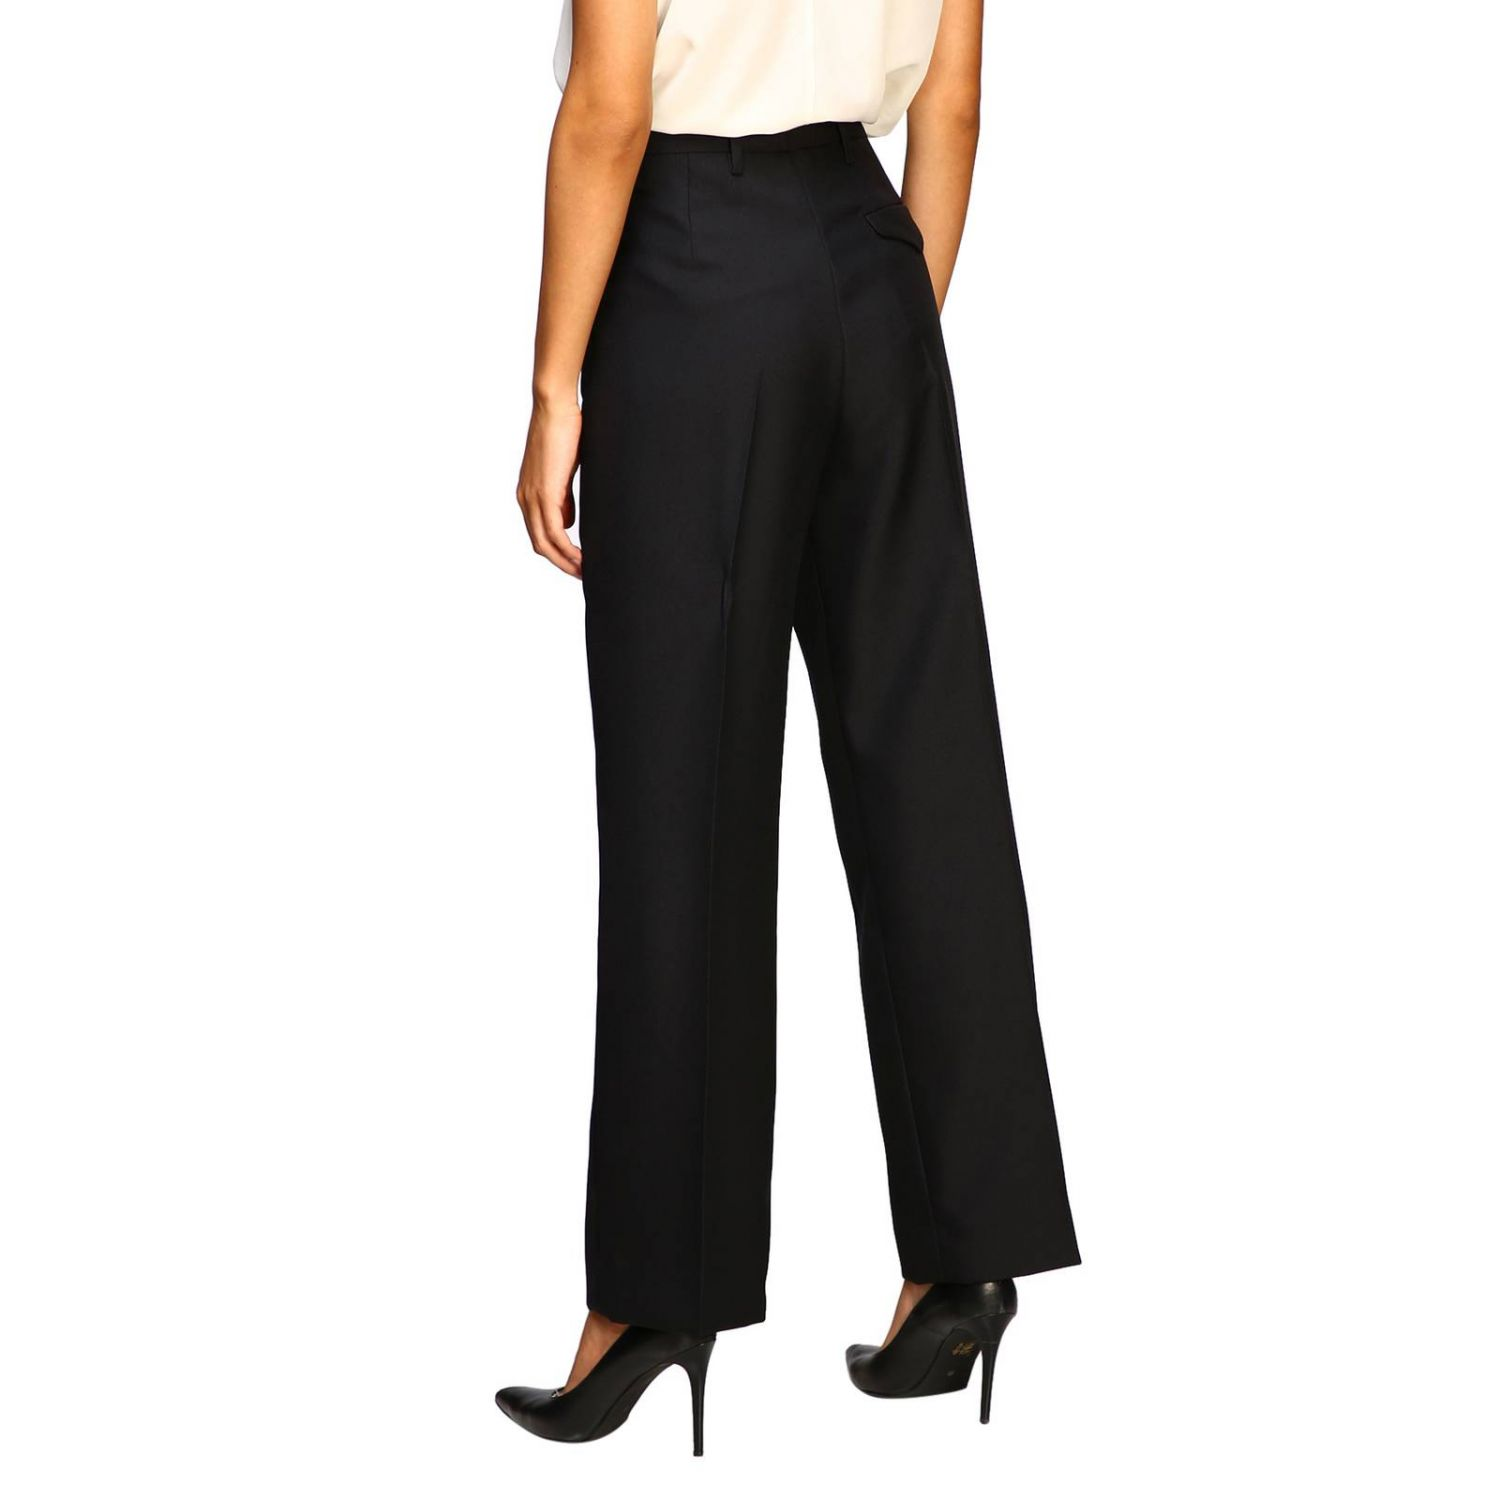 Prada classic high-waisted pants black 3